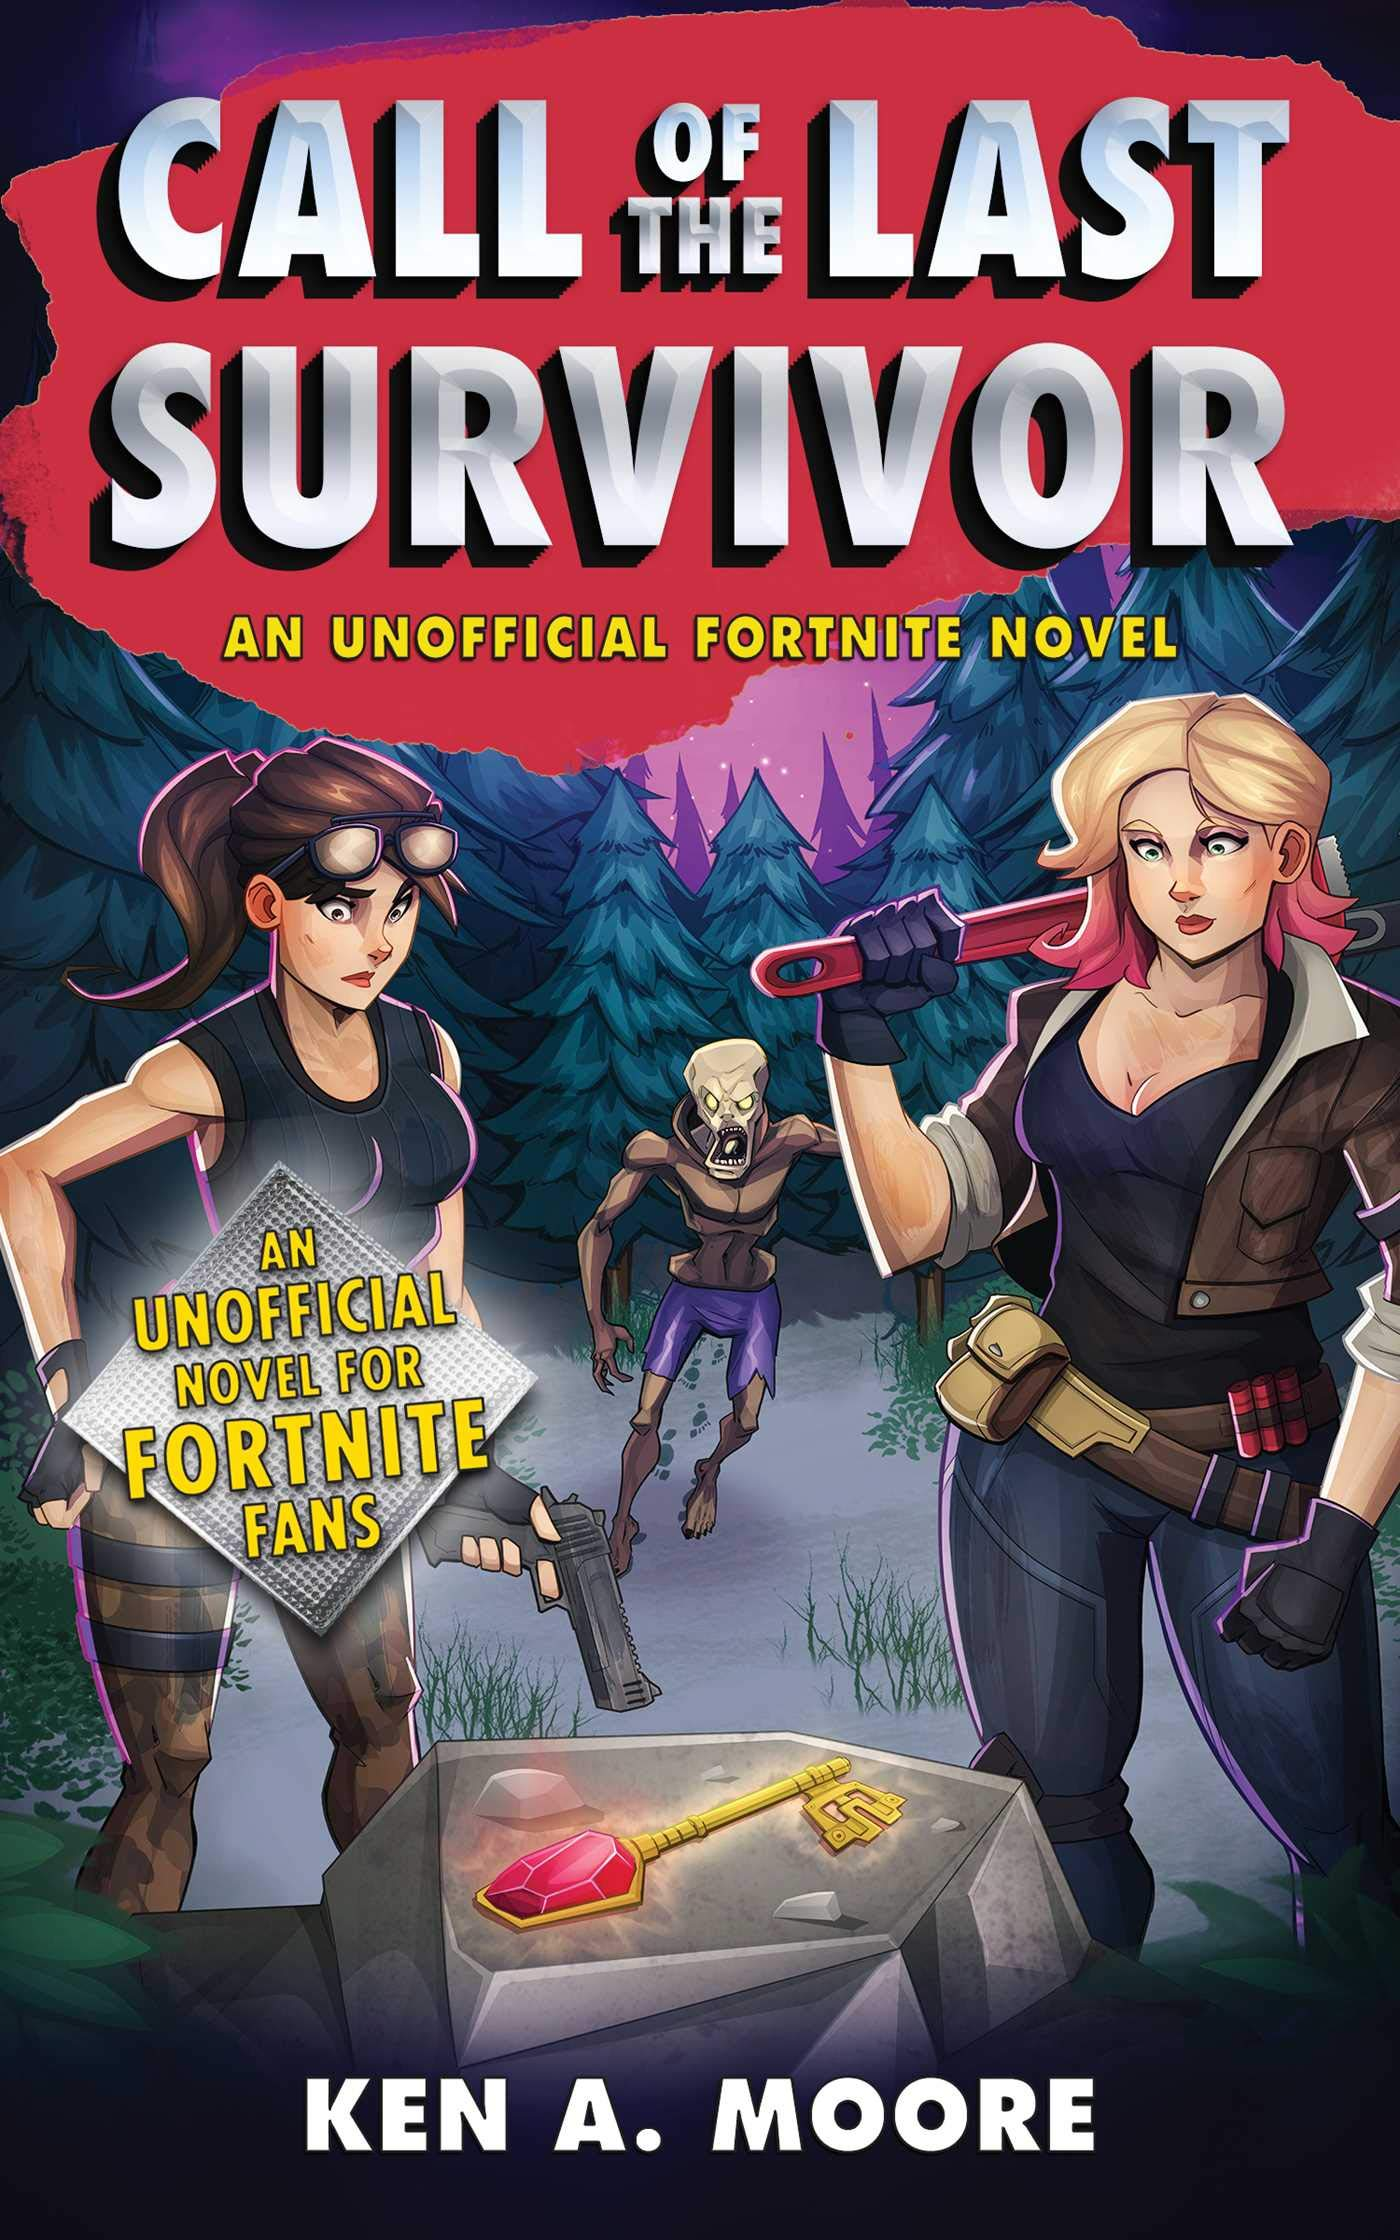 Call of the Last Survivor: An Unofficial Fortnite Novel